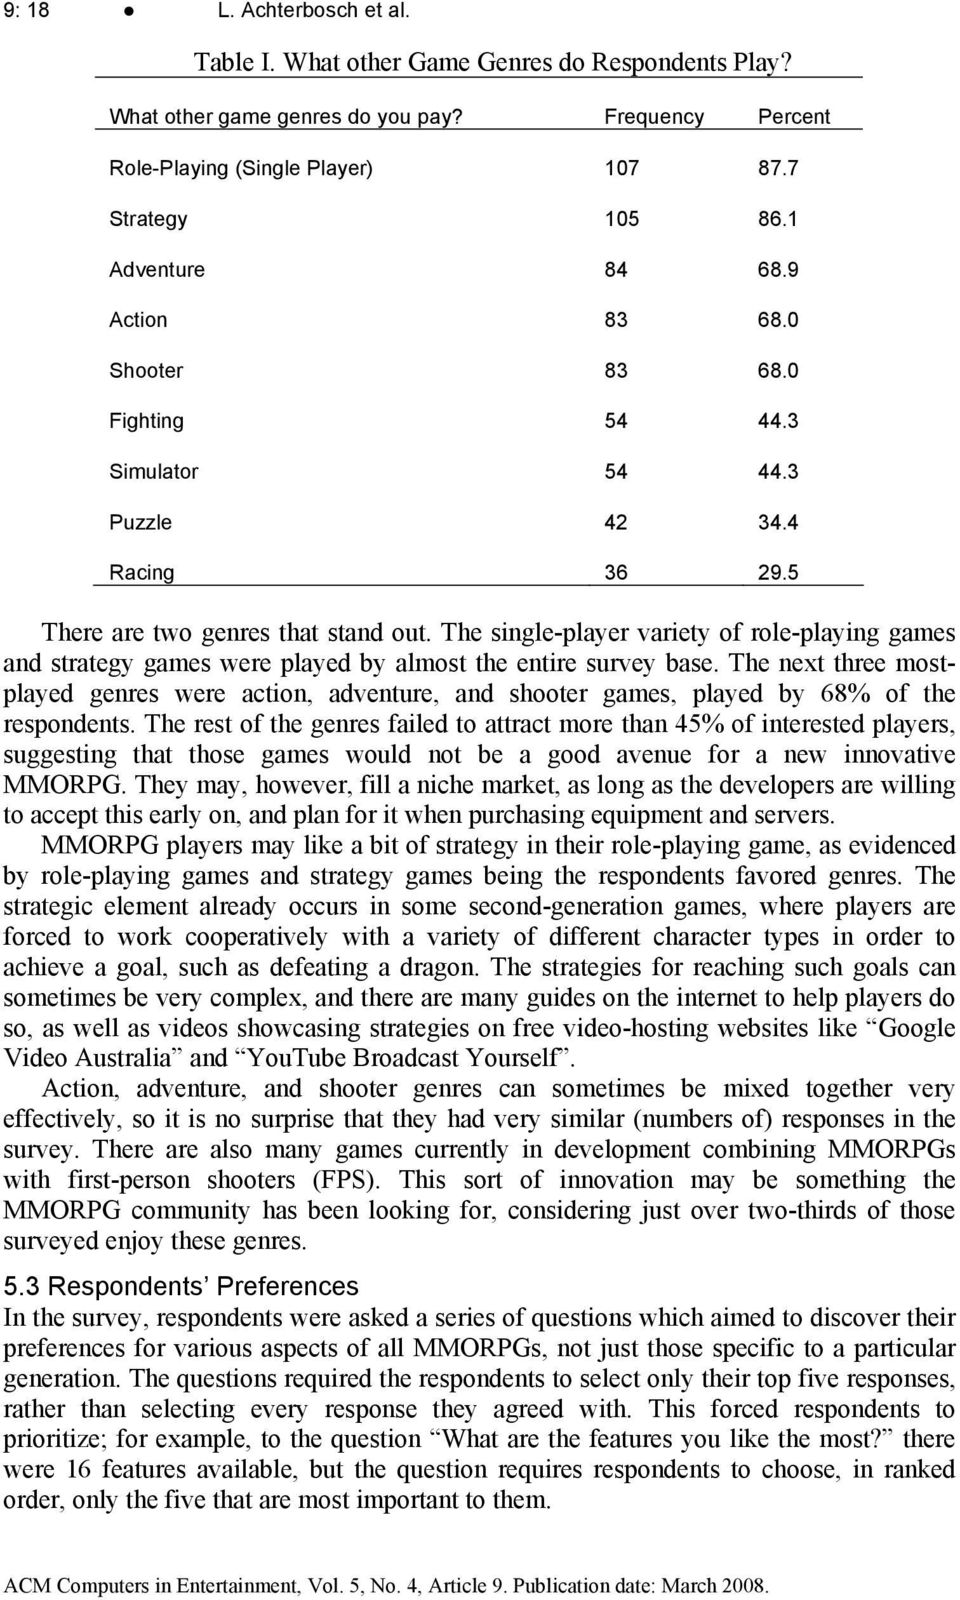 The single-player variety of role-playing games and strategy games were played by almost the entire survey base.